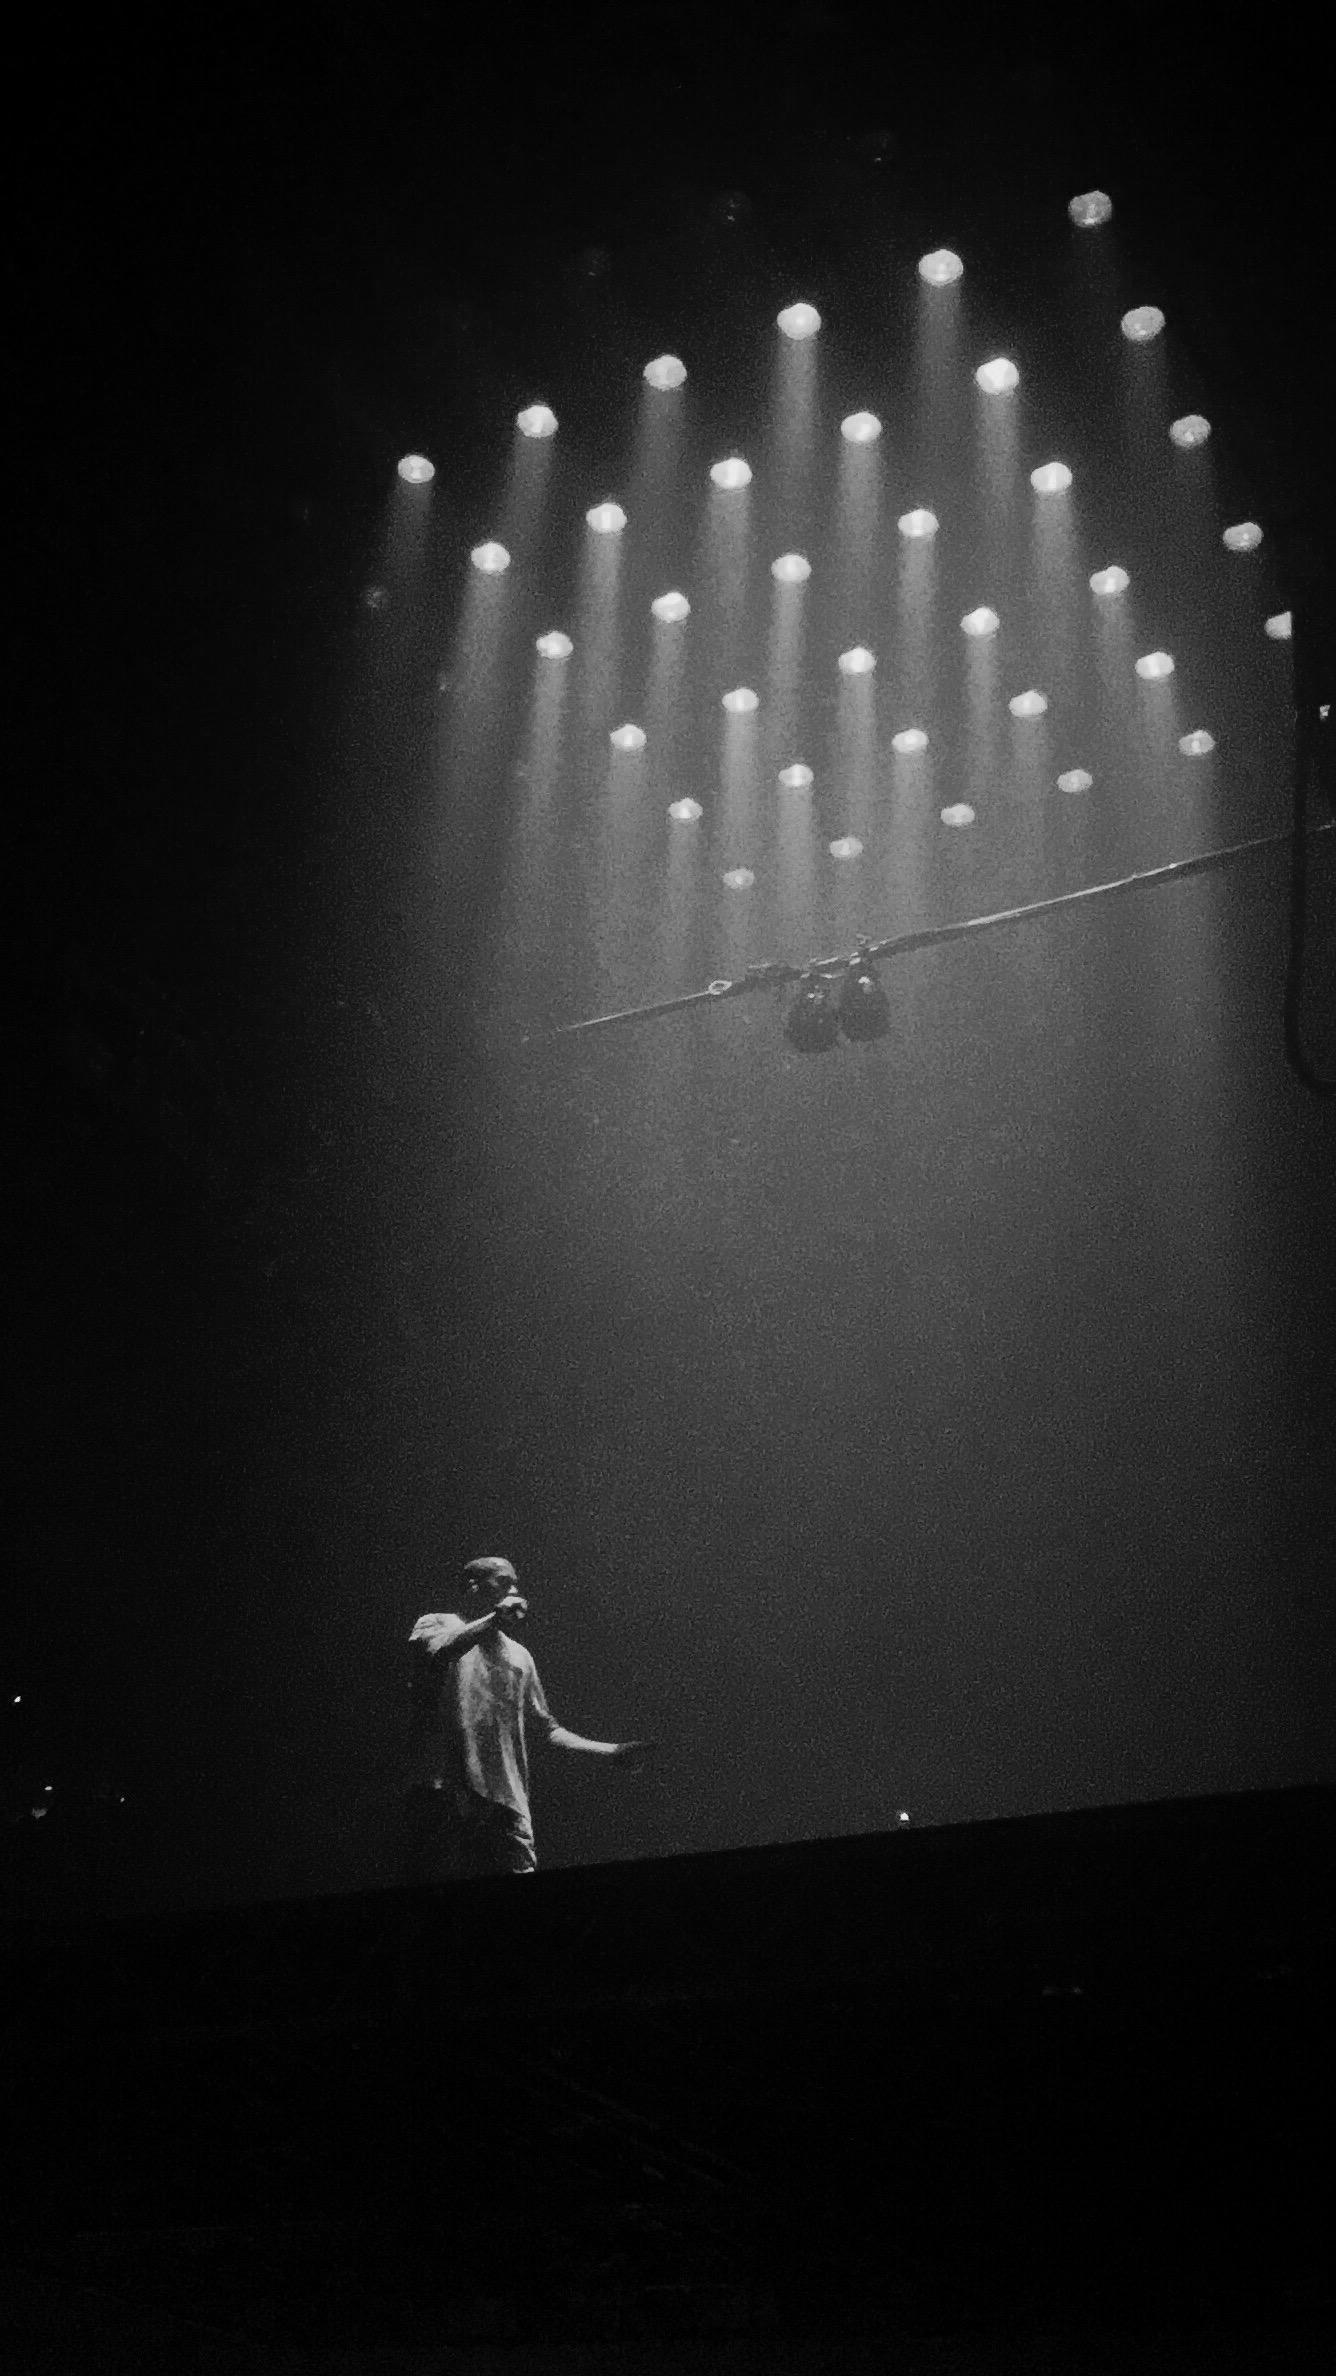 Kanye West Iphone Wallpaper Posted By Ethan Simpson